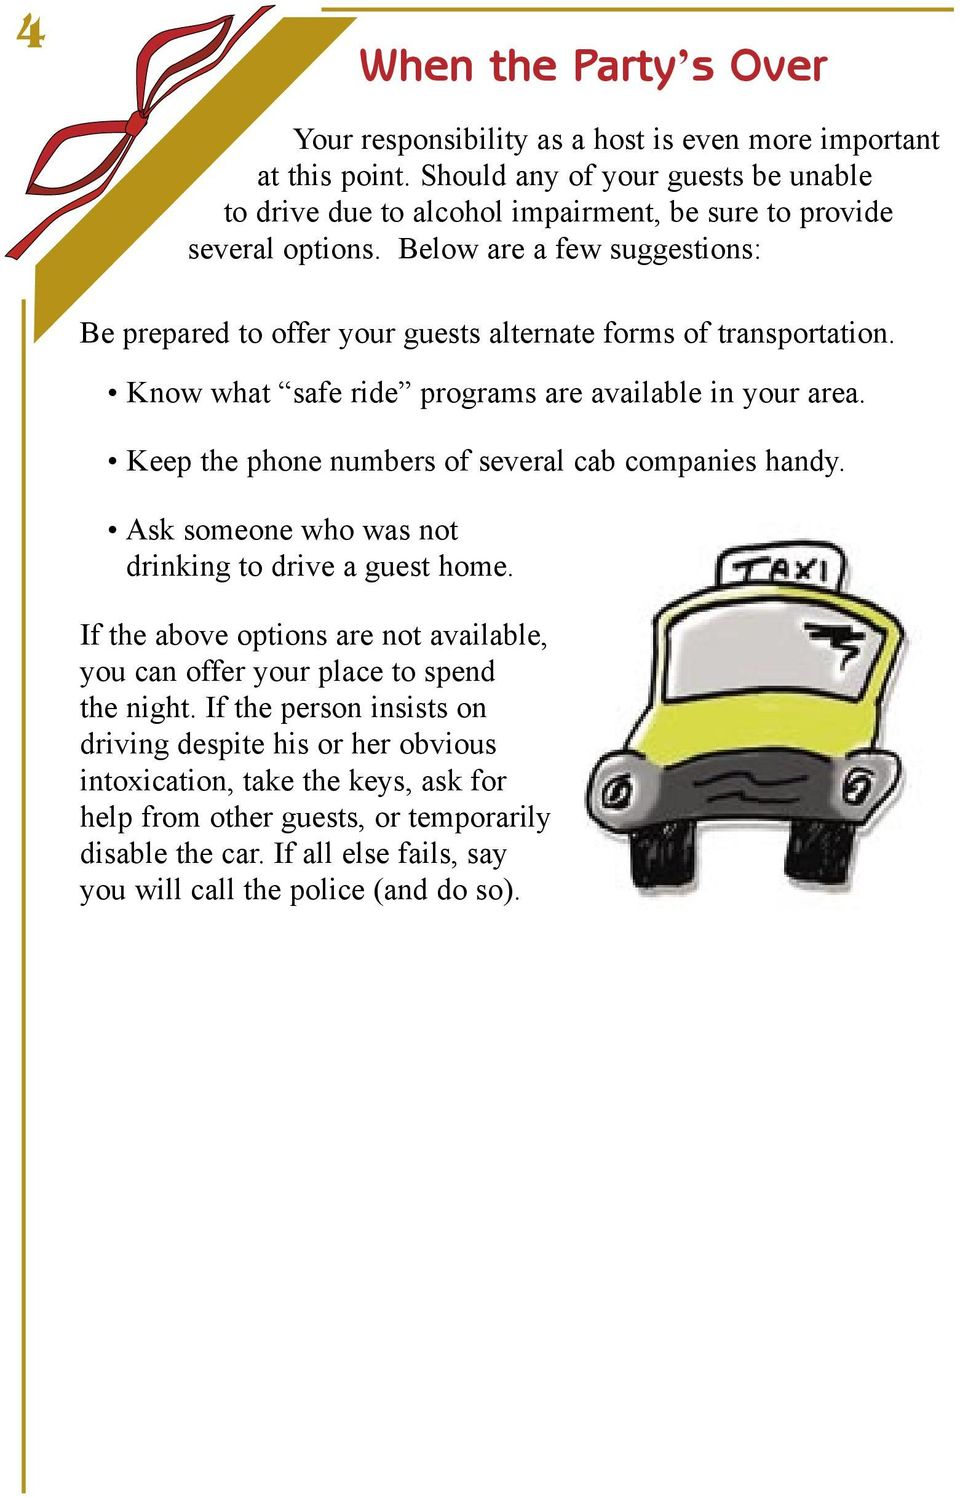 Below are a few suggestions: Be prepared to offer your guests alternate forms of transportation. Know what safe ride programs are available in your area.